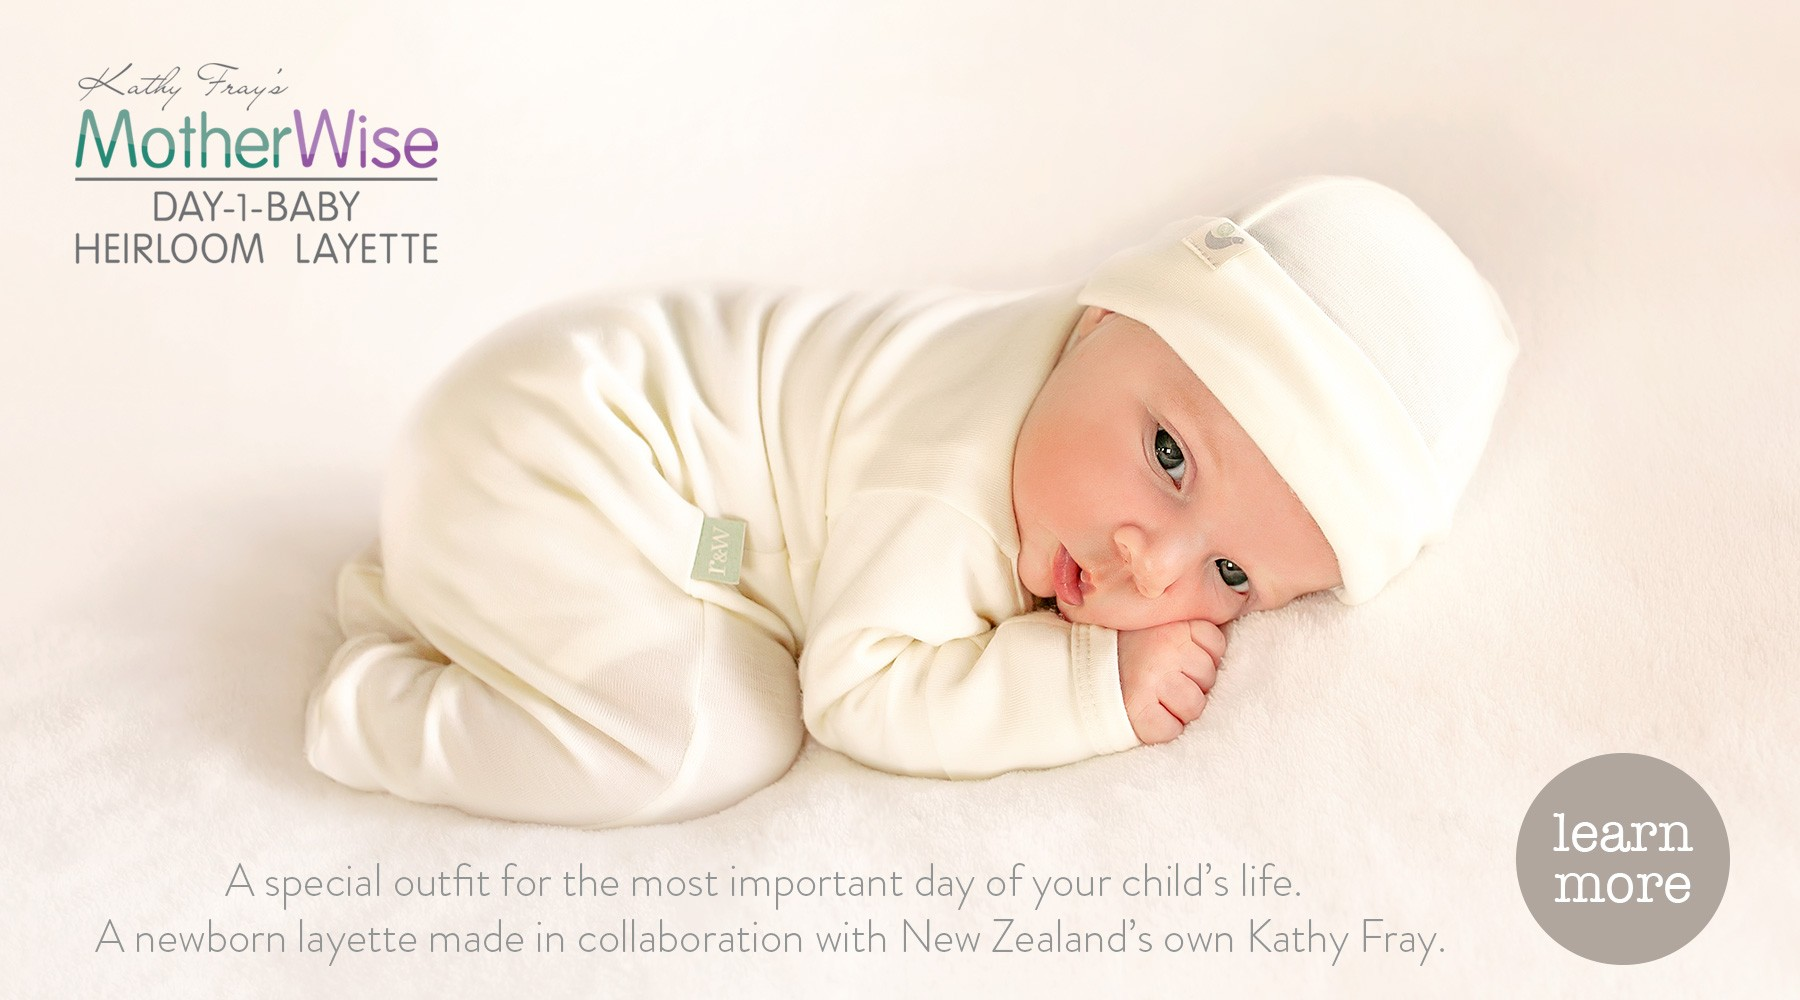 Newborn baby merino recommended by midwives